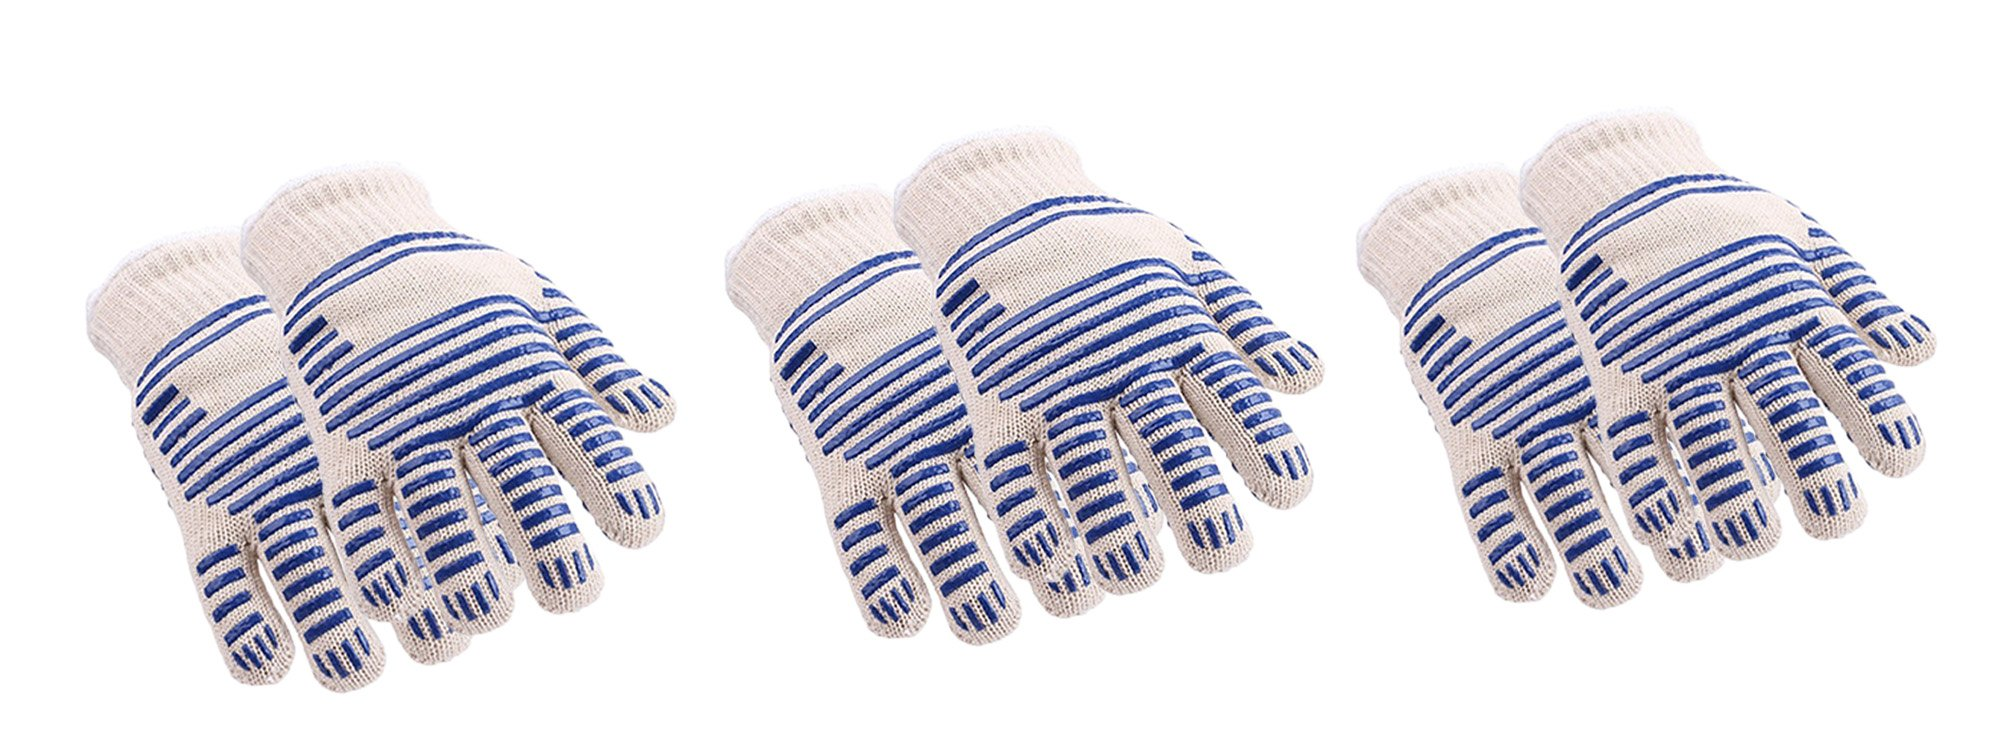 Msmsse 932°F Extreme Heat Resistant Kitchen BBQ Gloves Oven Mitts With Fingers For Cooking Grilling or Baking Heat Resistance (3 Pairs)